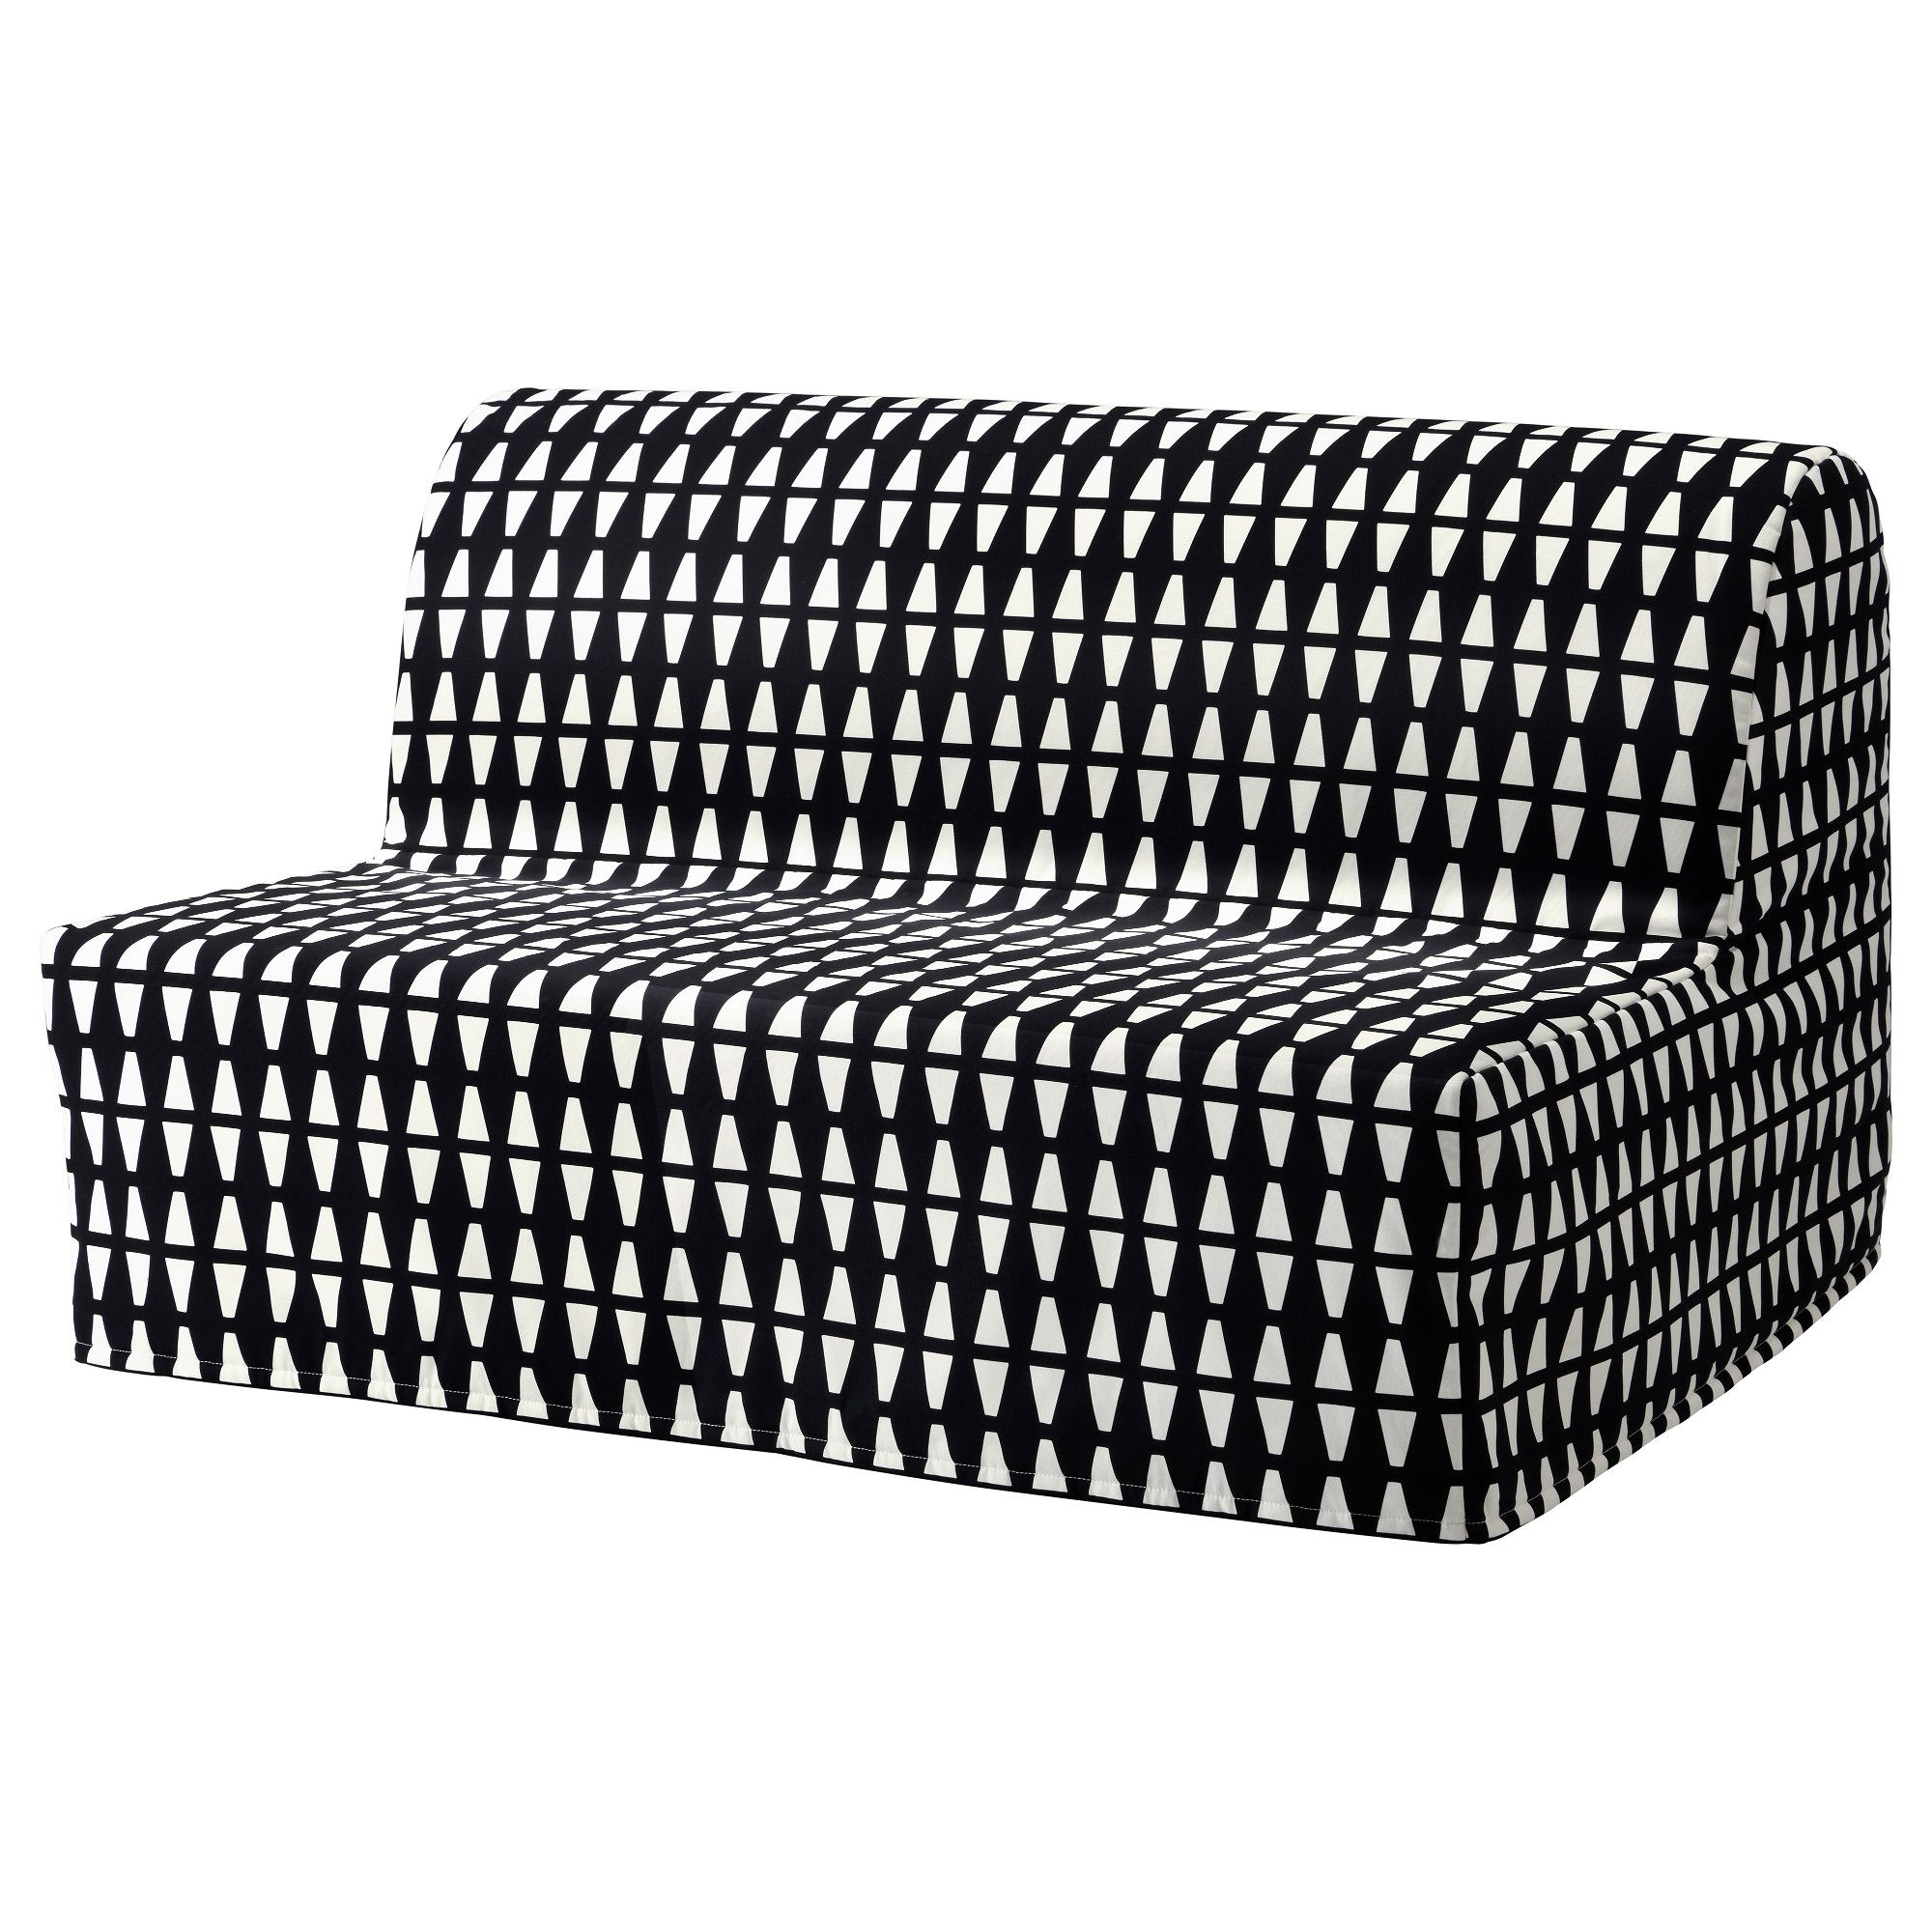 Ikea Lycksele LÖvÅs Sleeper Sofa Ebbarp Black White The Cover Is Easy To Keep Clean As It Removable And Can Be Machine Washed